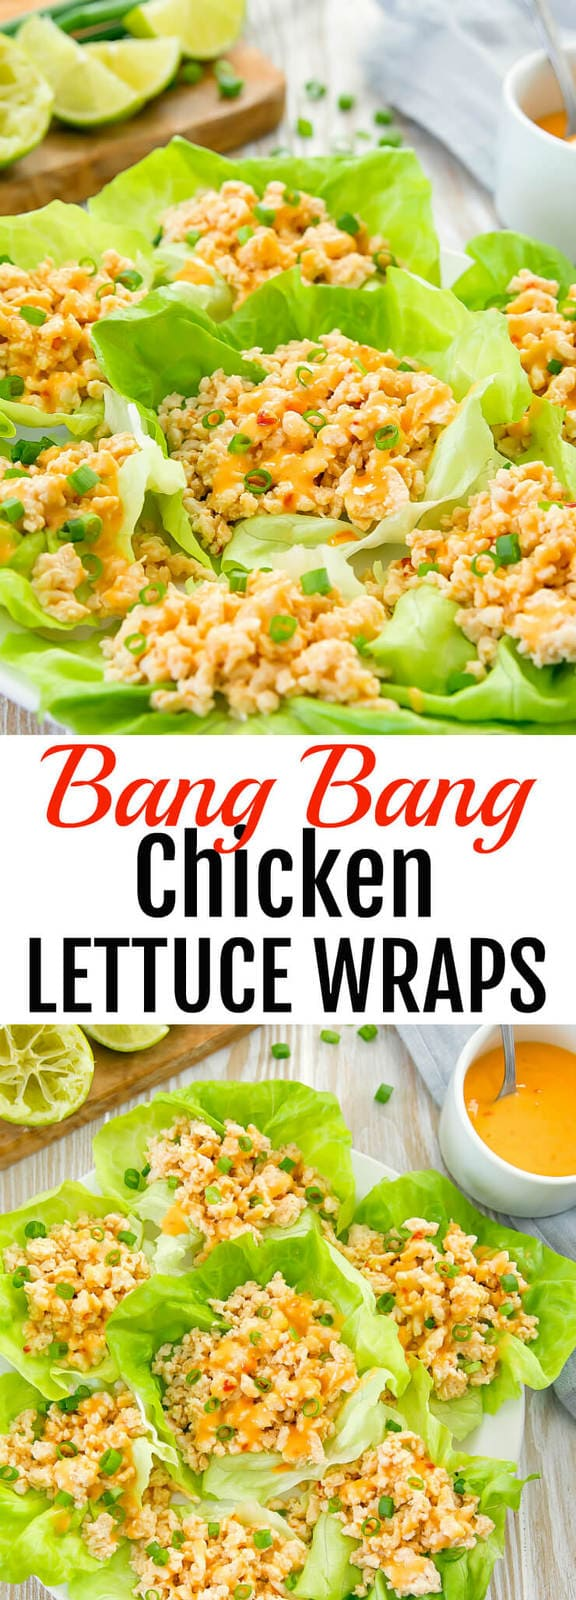 Bang Bang Chicken Lettuce Wraps. An easy and light meal ready in less than 30 minutes.